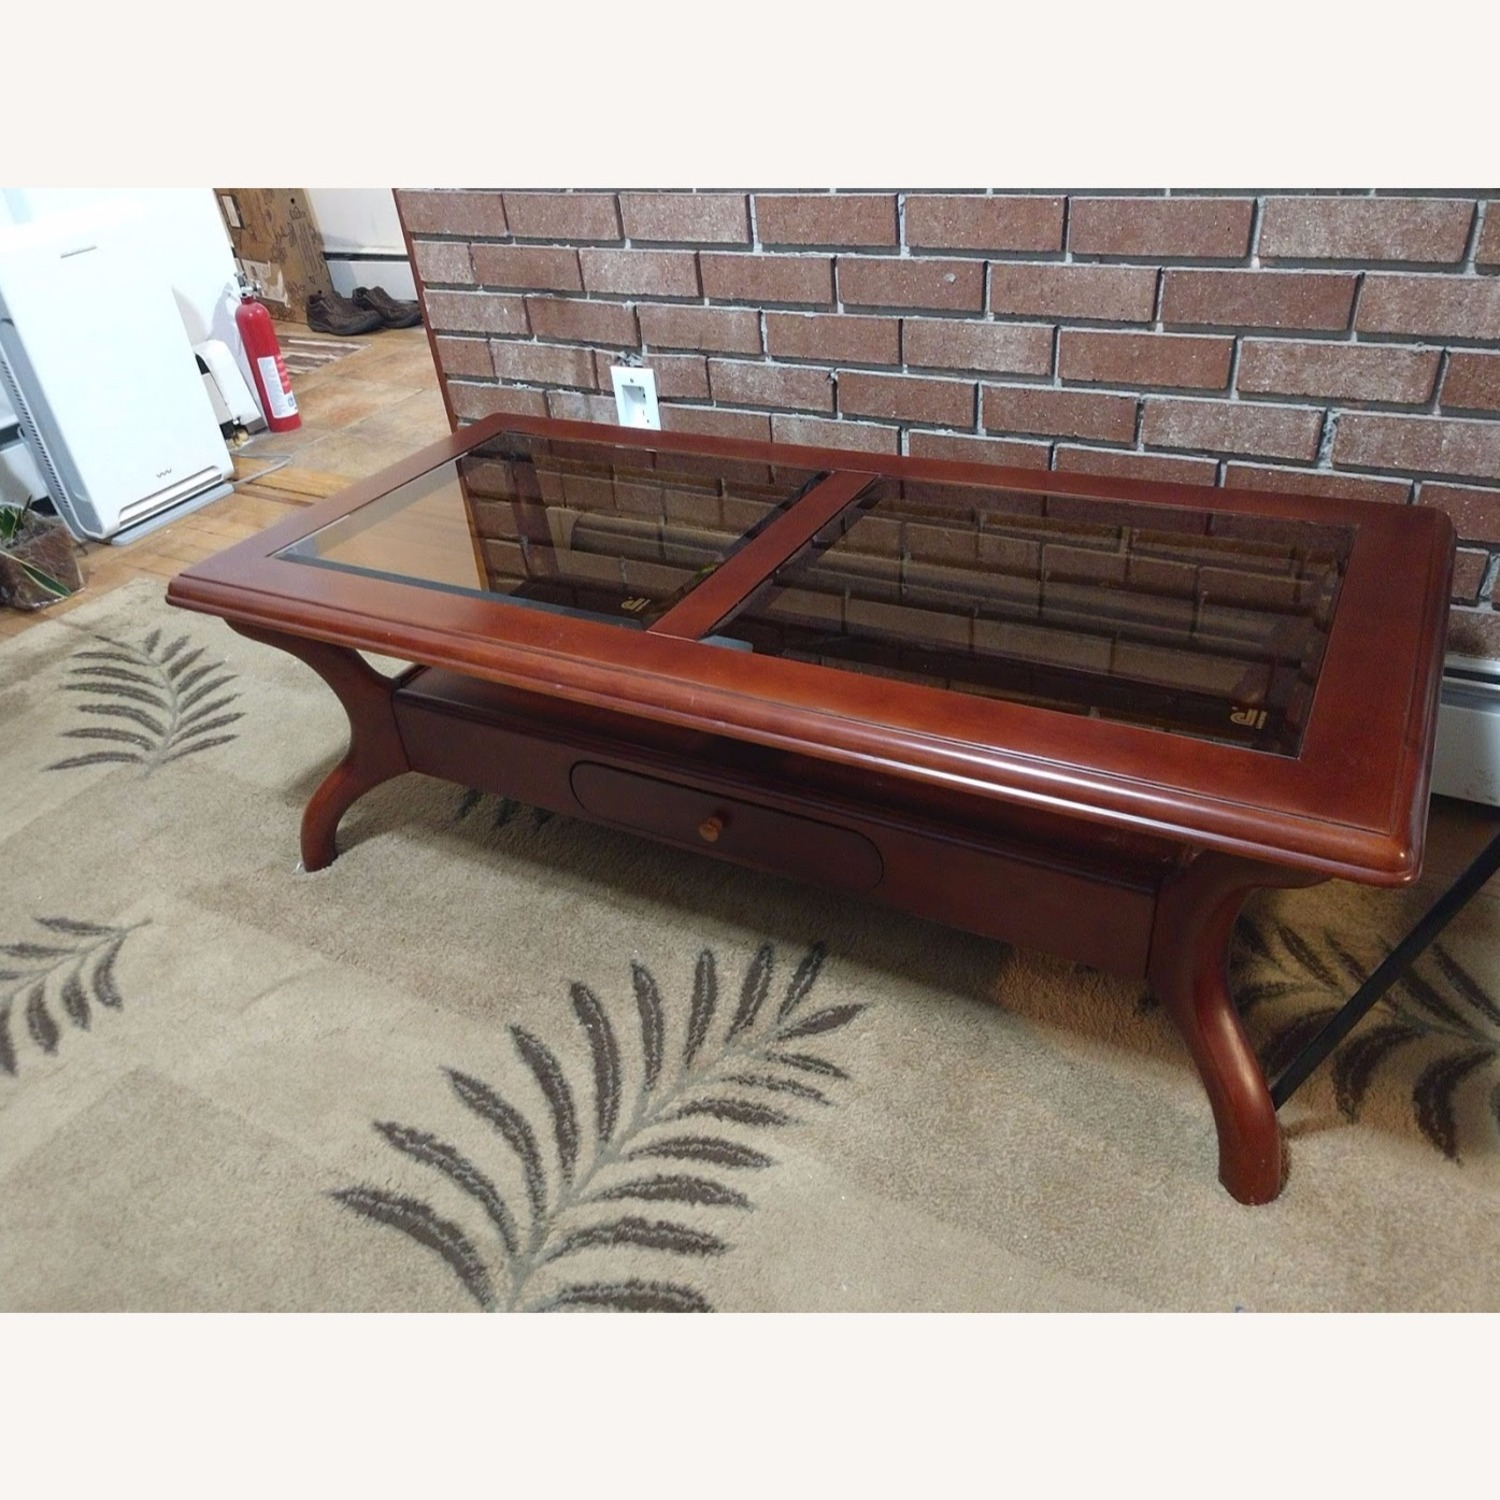 Solid Wood Coffee Table with Glass Top - image-1